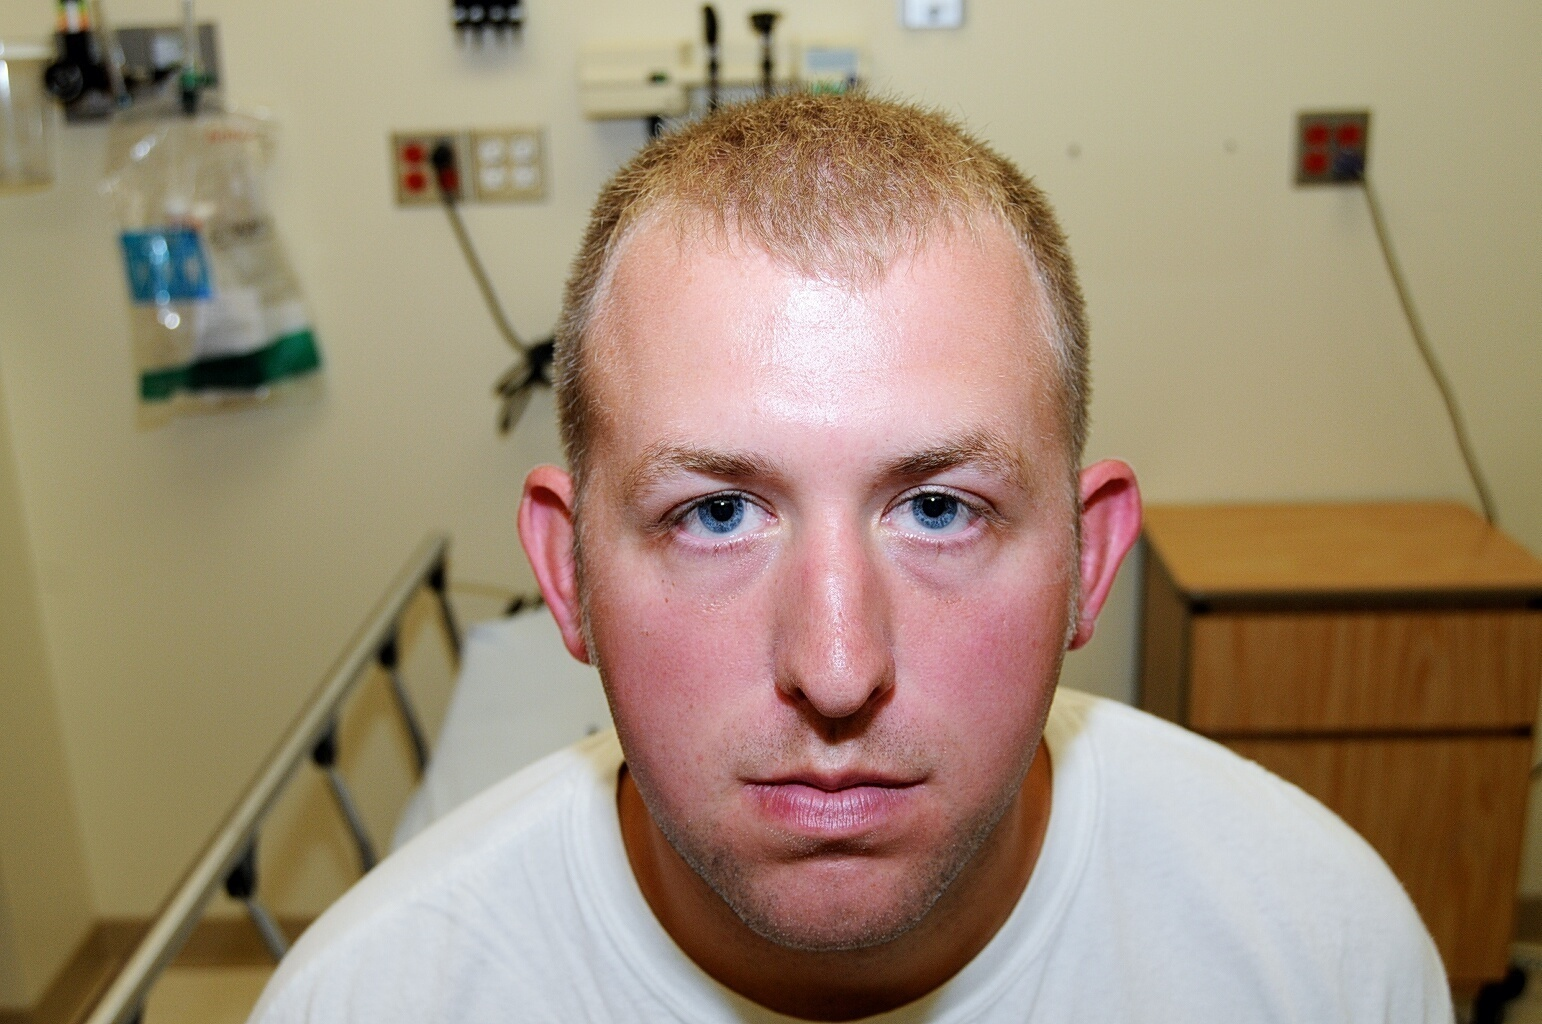 In this 2014 file photo provided by the St. Louis County Prosecuting Attorney's Office is Ferguson police officer Darren Wilson during his medical examination after he the fatal shooting of Michael Brown. St. Louis County's top prosecutor announced Thursday, July 30, 3030, that he will not charge Brown, the former police officer who fatally shot Michael Brown in Ferguson, Mo. (St. Louis County Prosecuting Attorney's Office via AP, File)